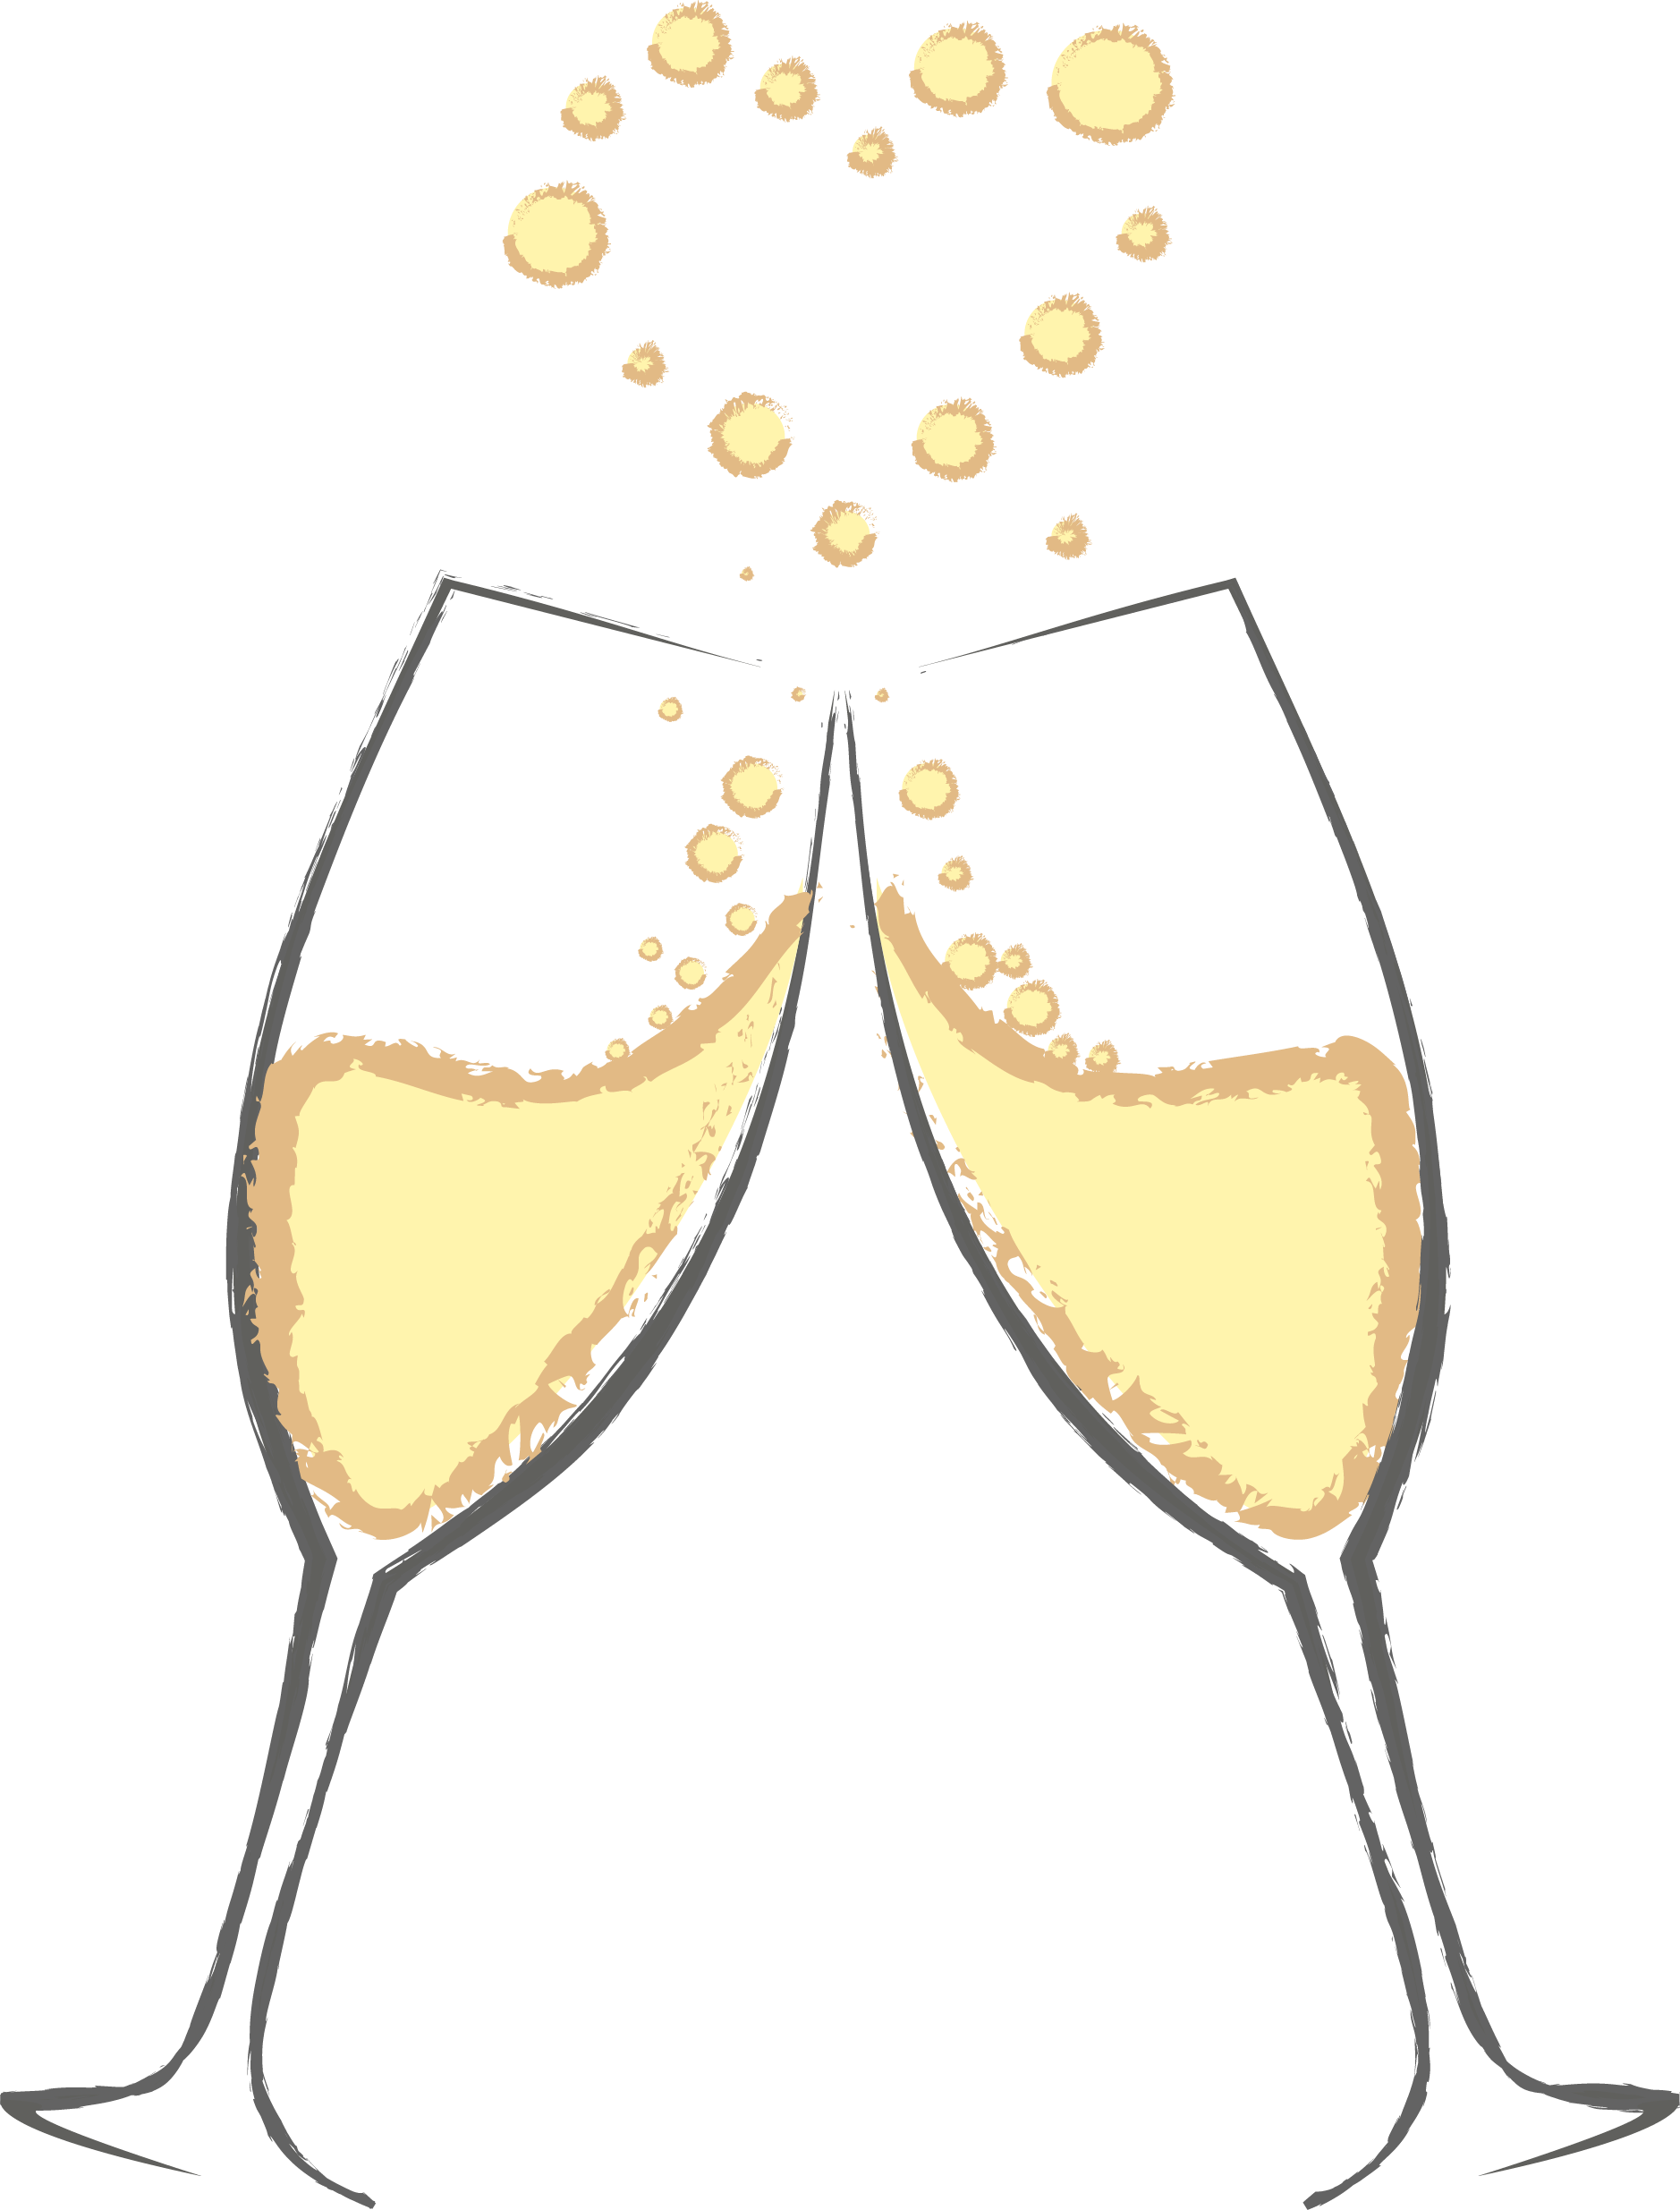 Champagne glasses clipart pictures black and white library HD Svg Library Stock Free Clipart Champagne Glasses - Cheers Wine ... black and white library